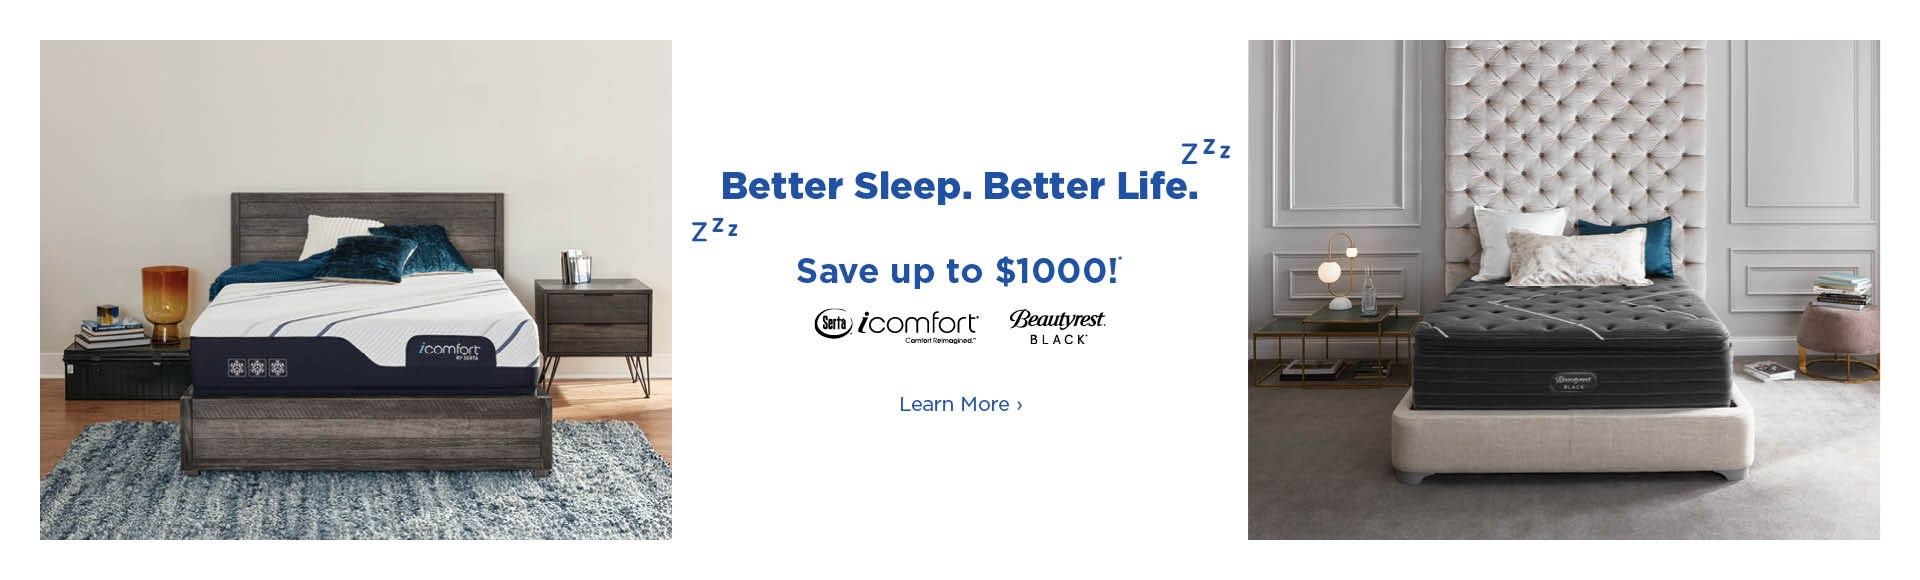 Save up to $1000 with qualifying purchase. See store for details.